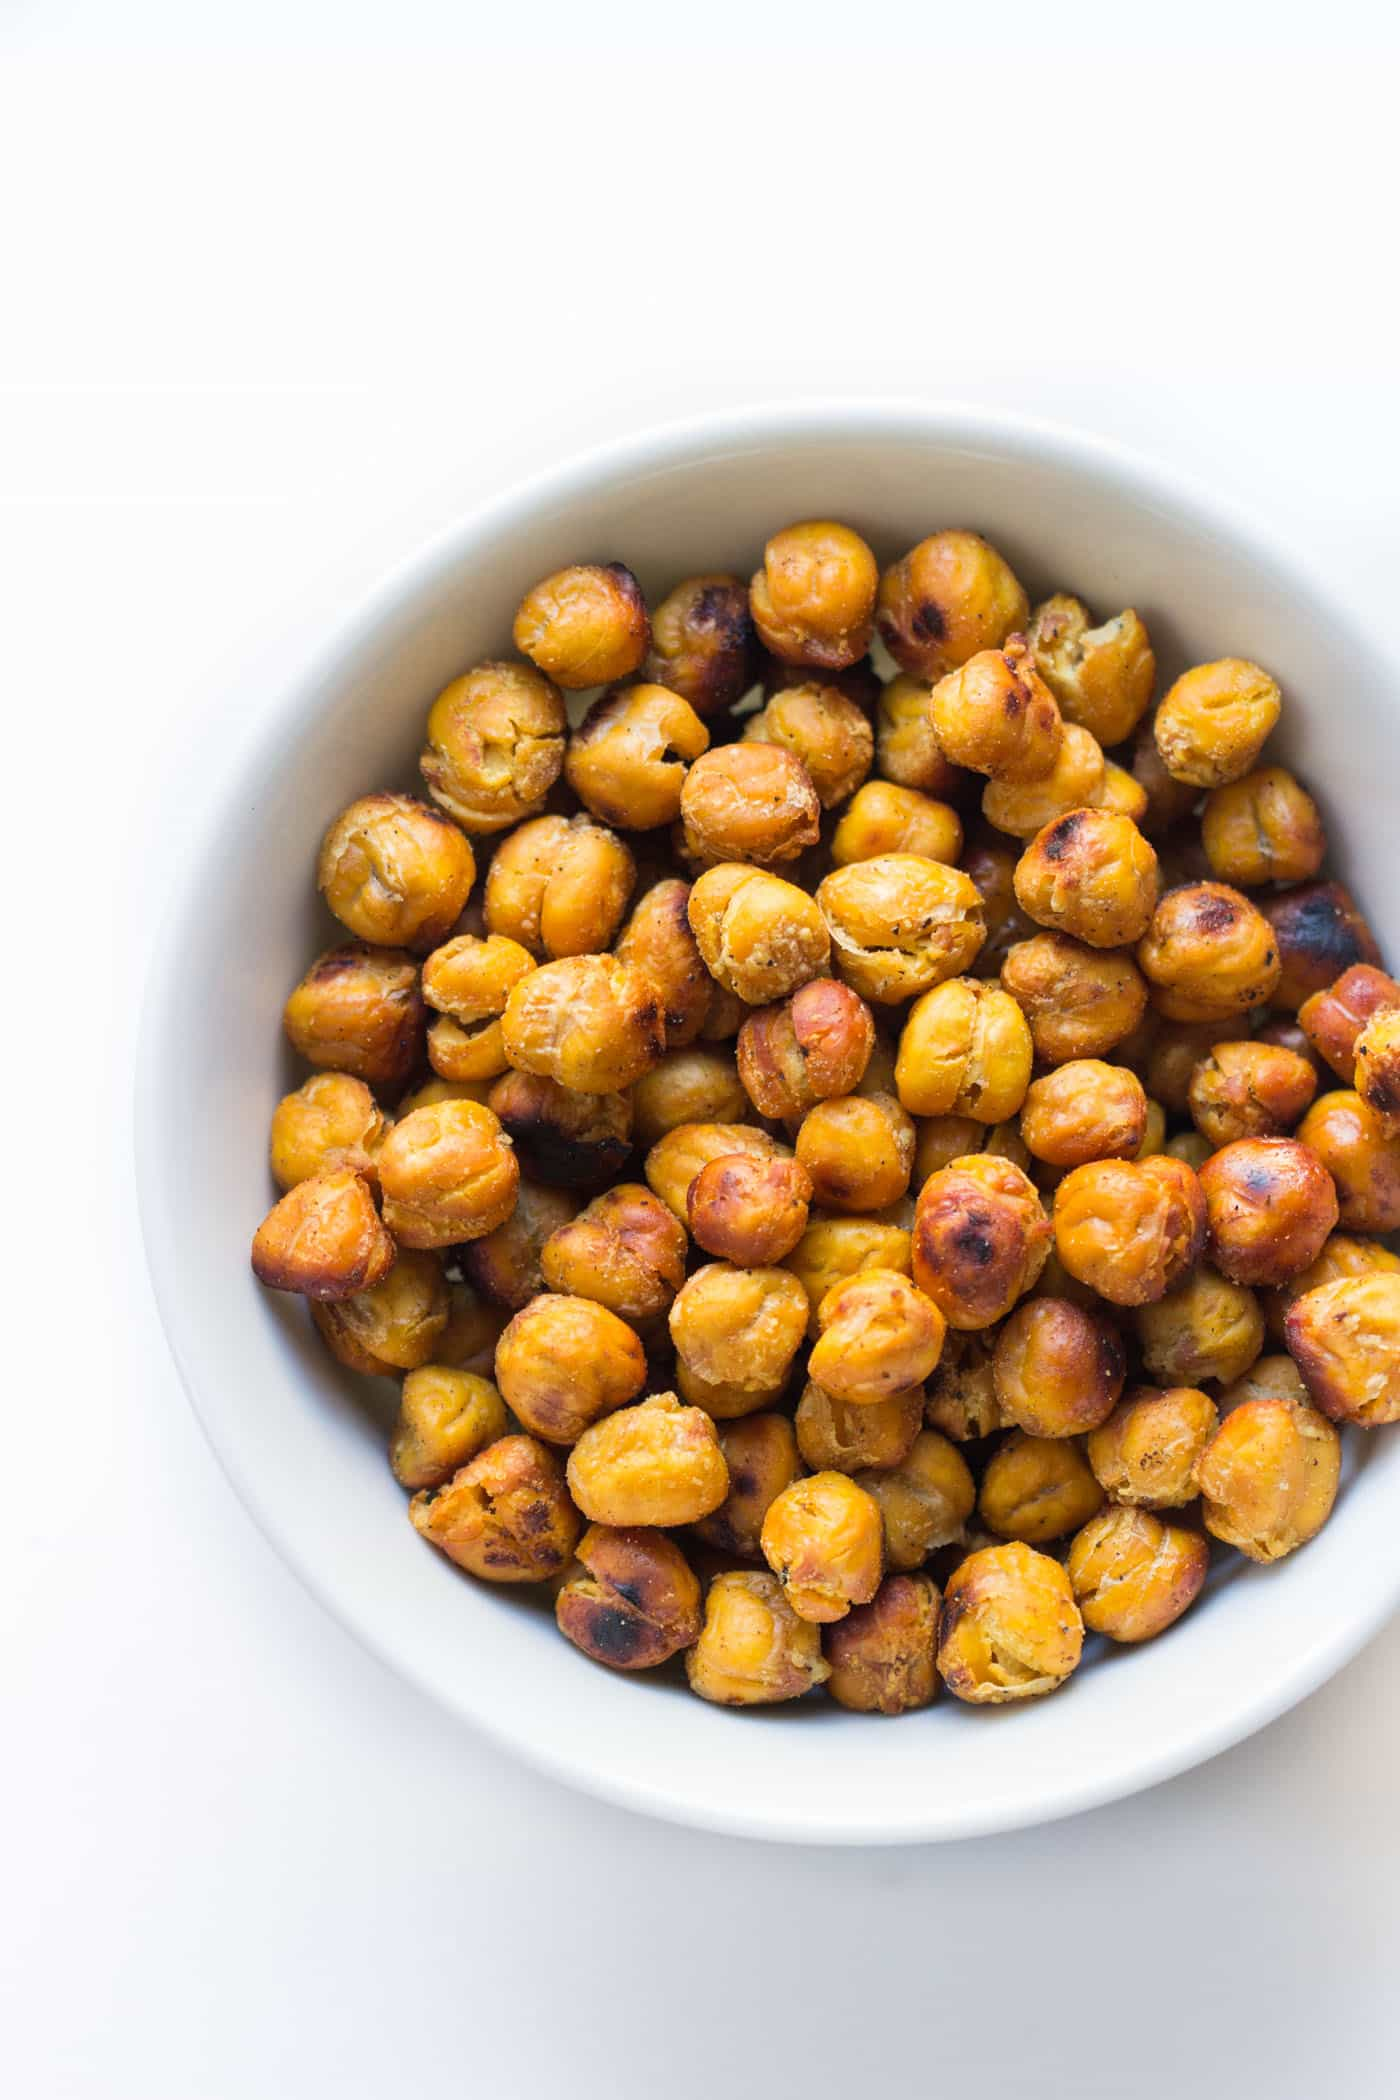 Crispy Garlic Roasted Chickpeas -- awesome on top of salads, soups, as a snack or even on pizza!